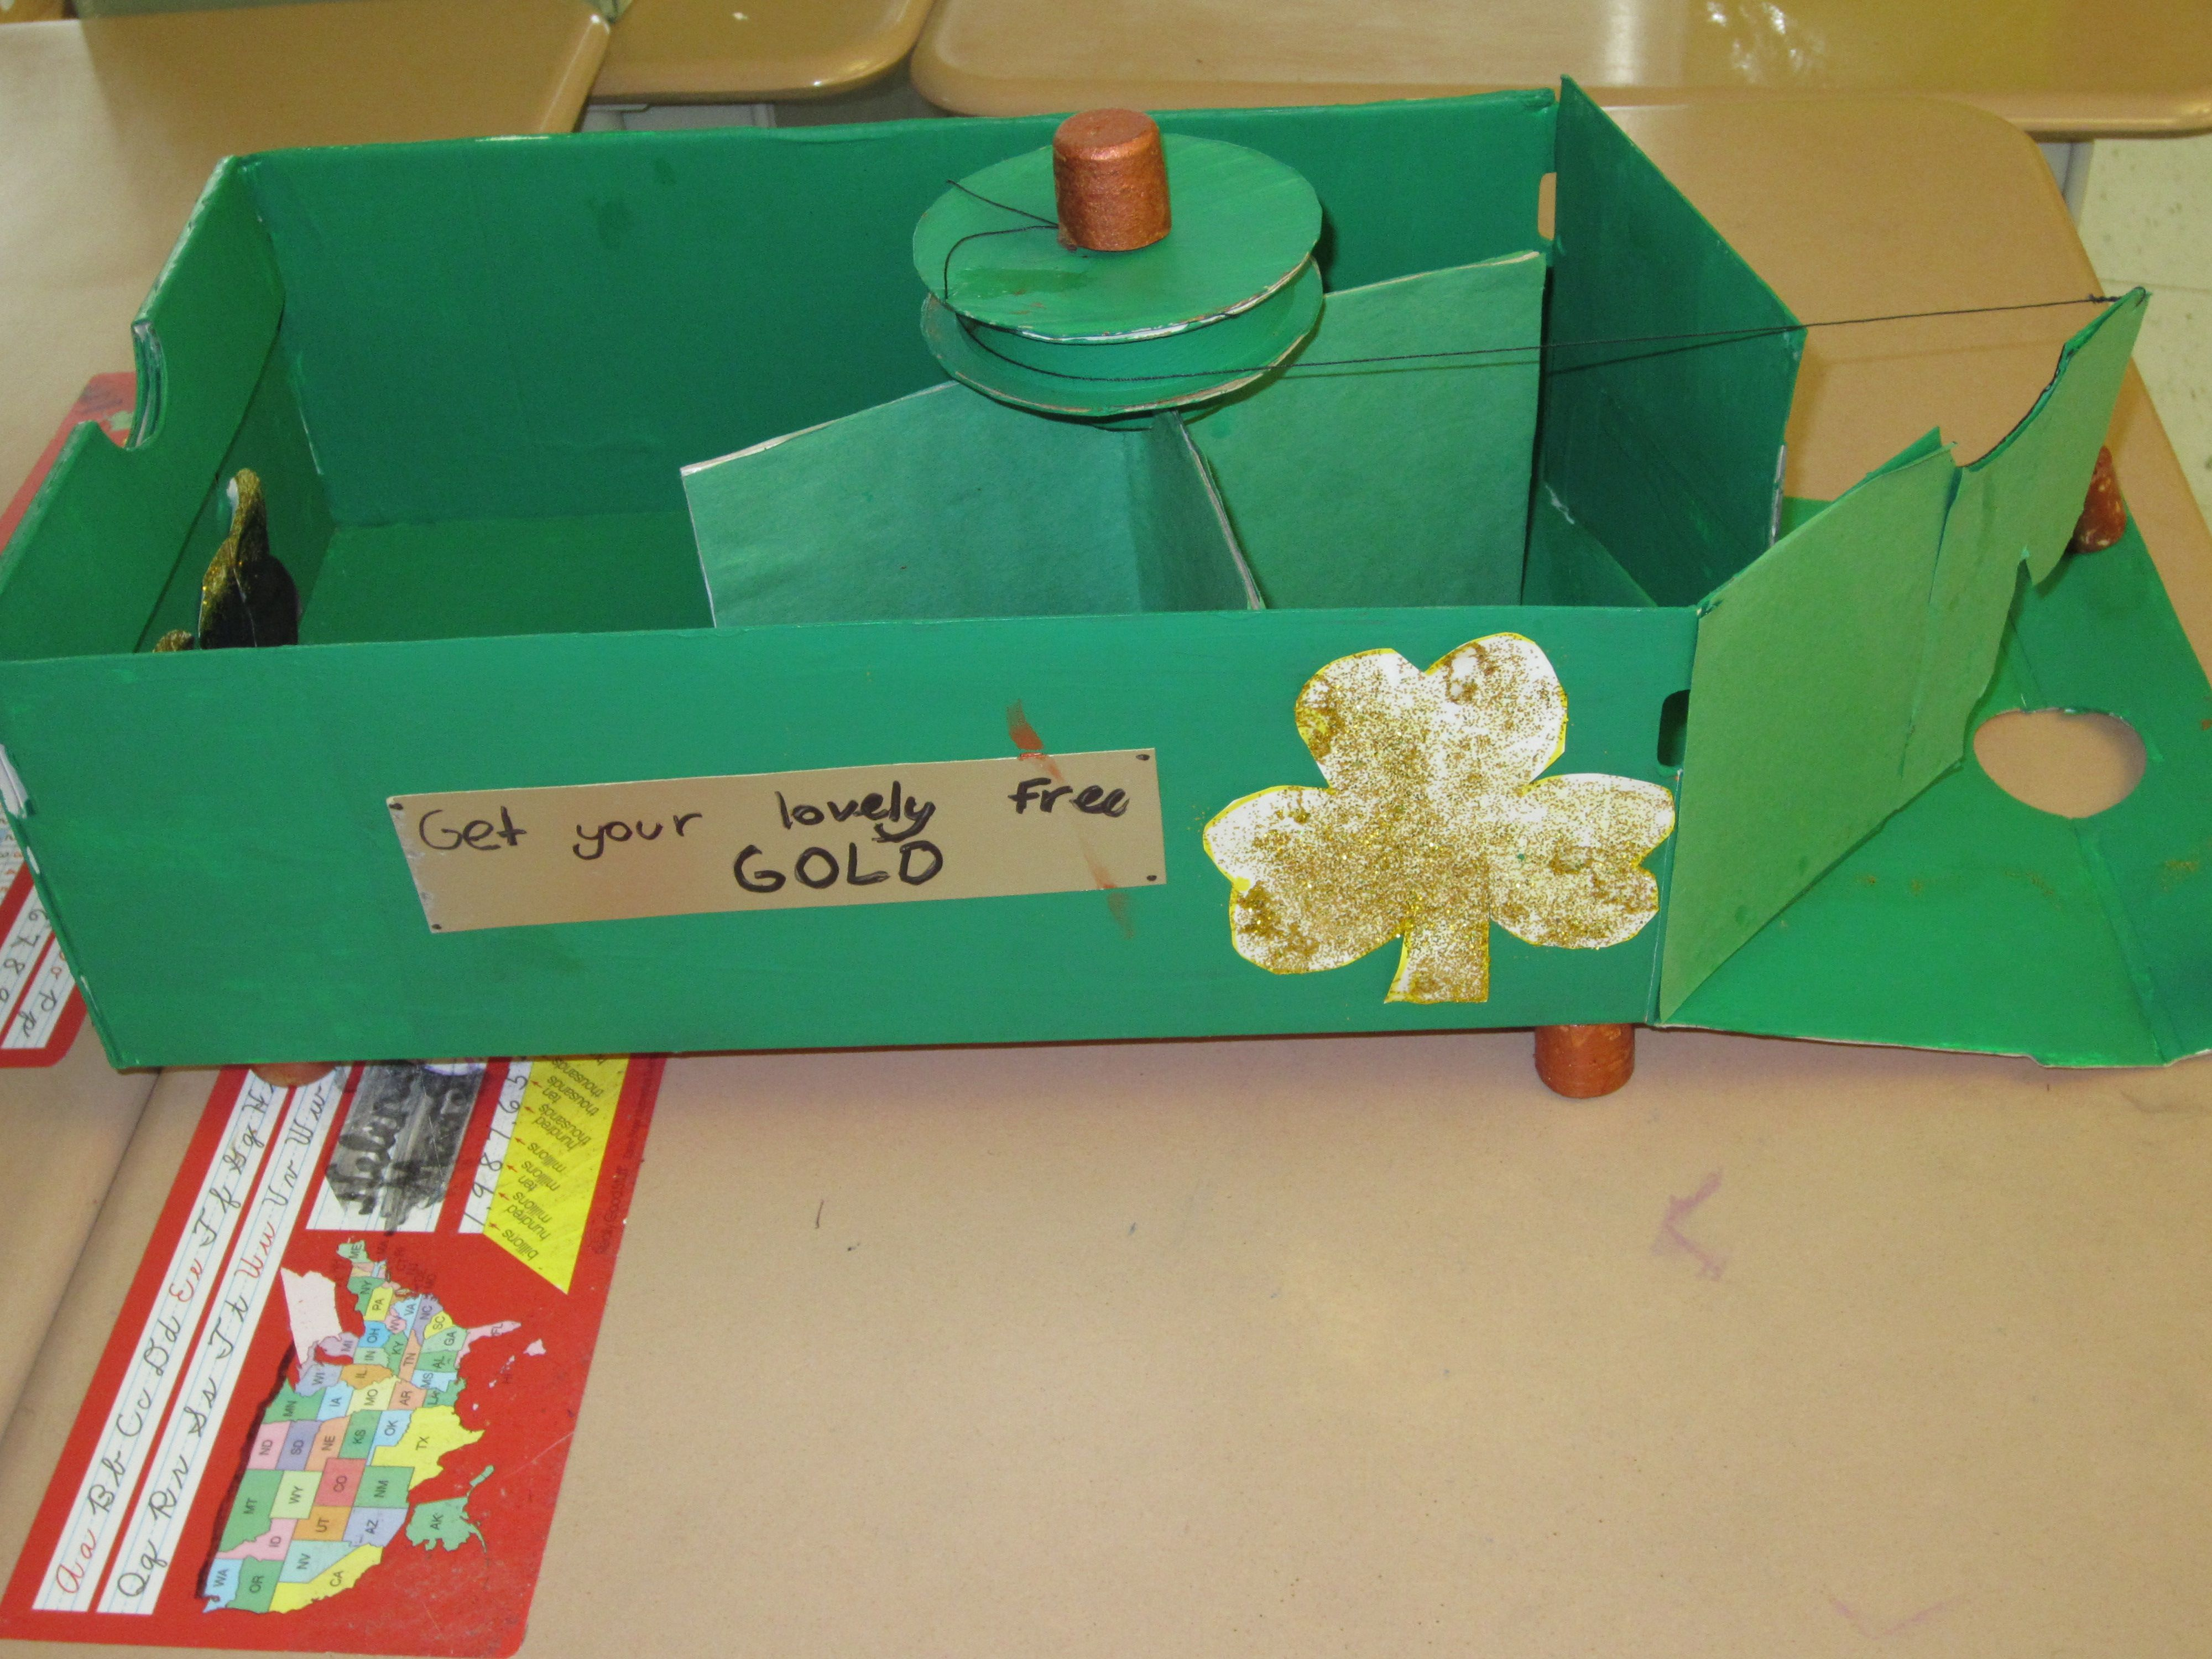 Simple machines project ideas - Leprechaun Traps Simple Machines Kruses Doing Their Personal Best